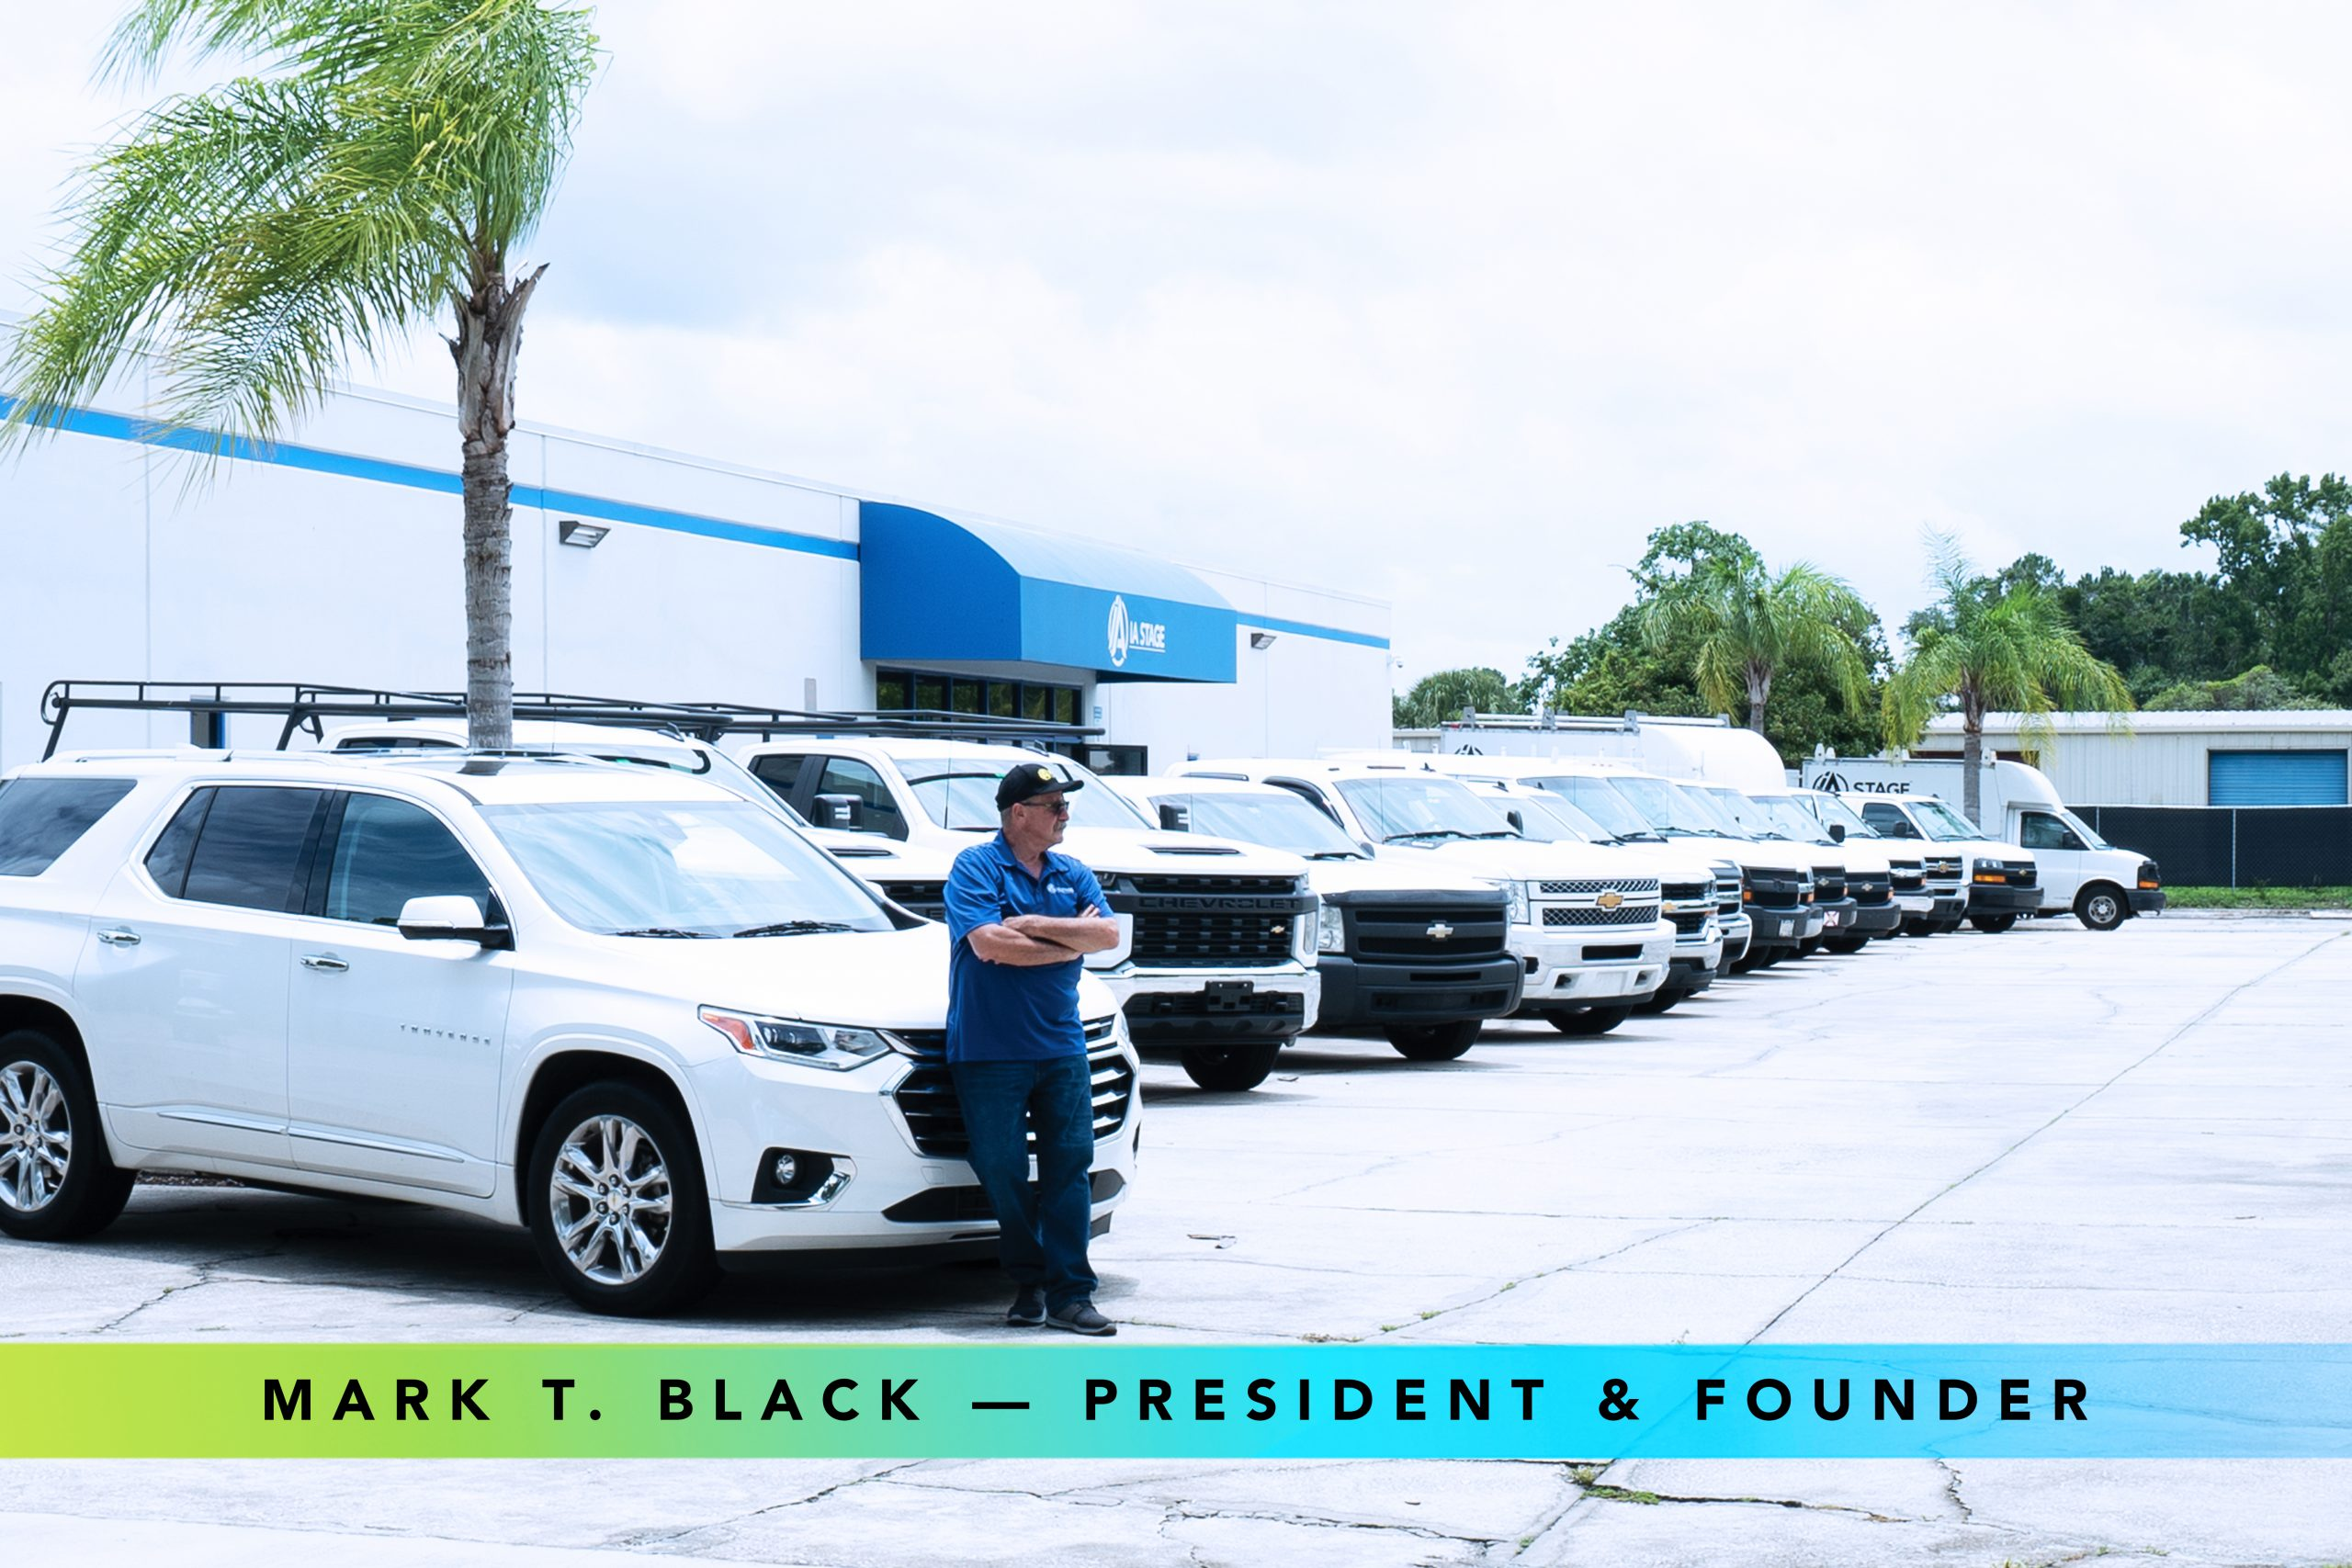 Mark Black, president and founder of IA Stage, and his fleet of company vehicles in front of the Central Florida facility.